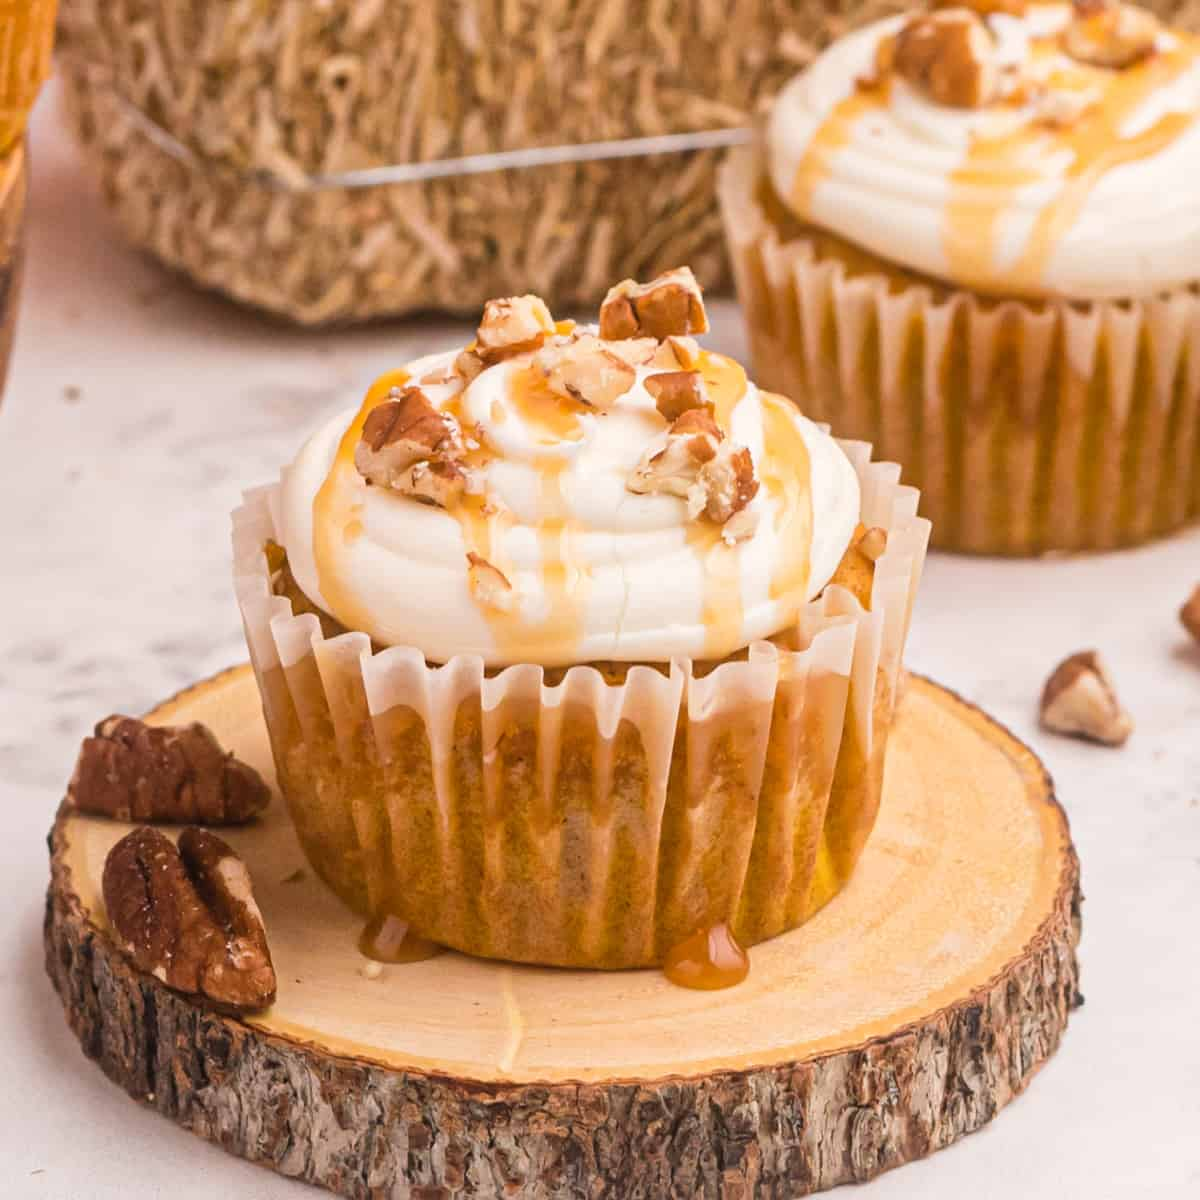 Pumpkin cupcakes drizzled with caramel and walnuts on a wood board.